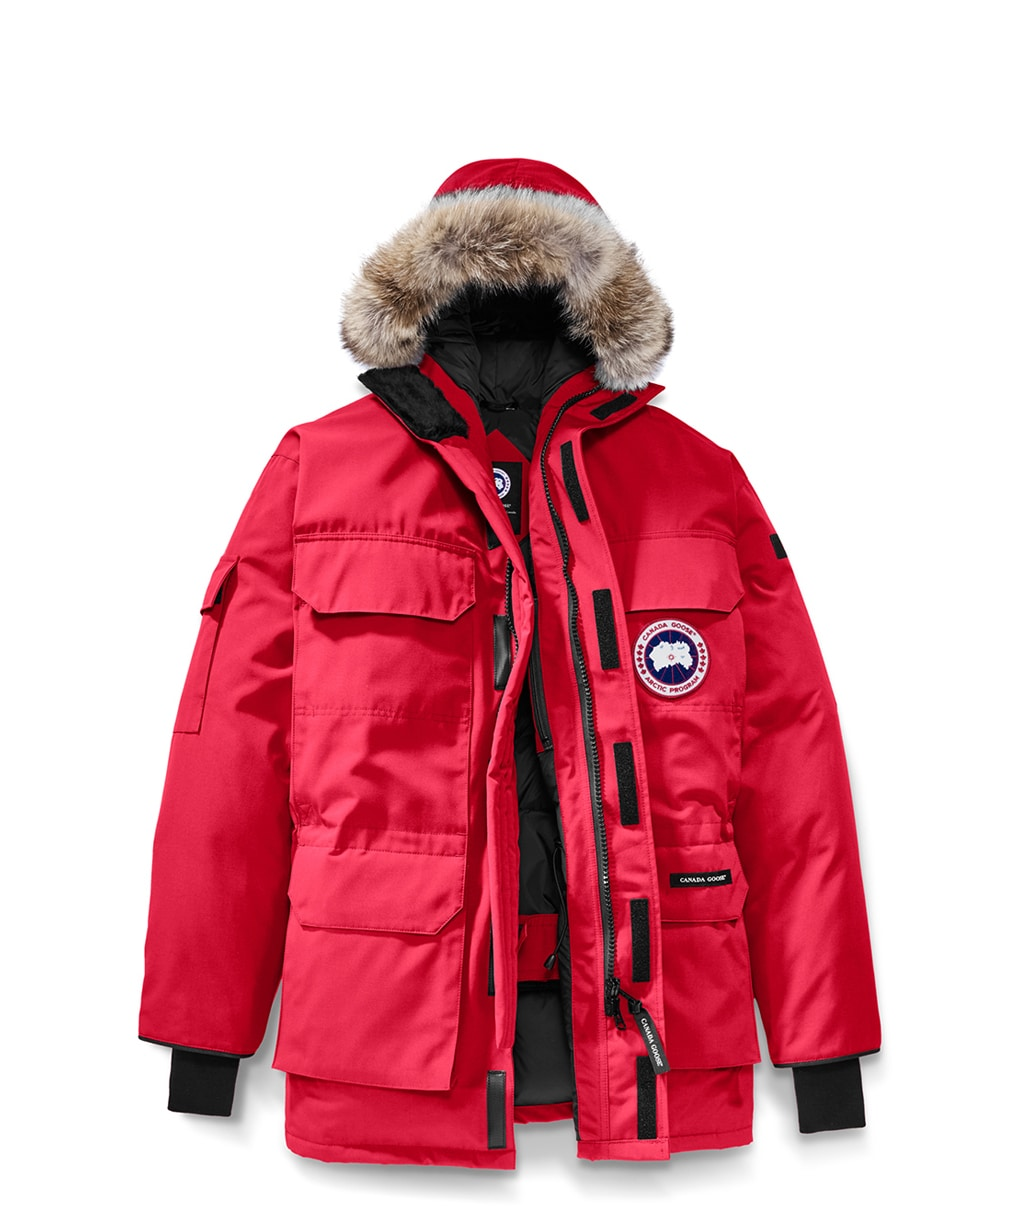 SHOP THE EXPEDITION PARKA (W)